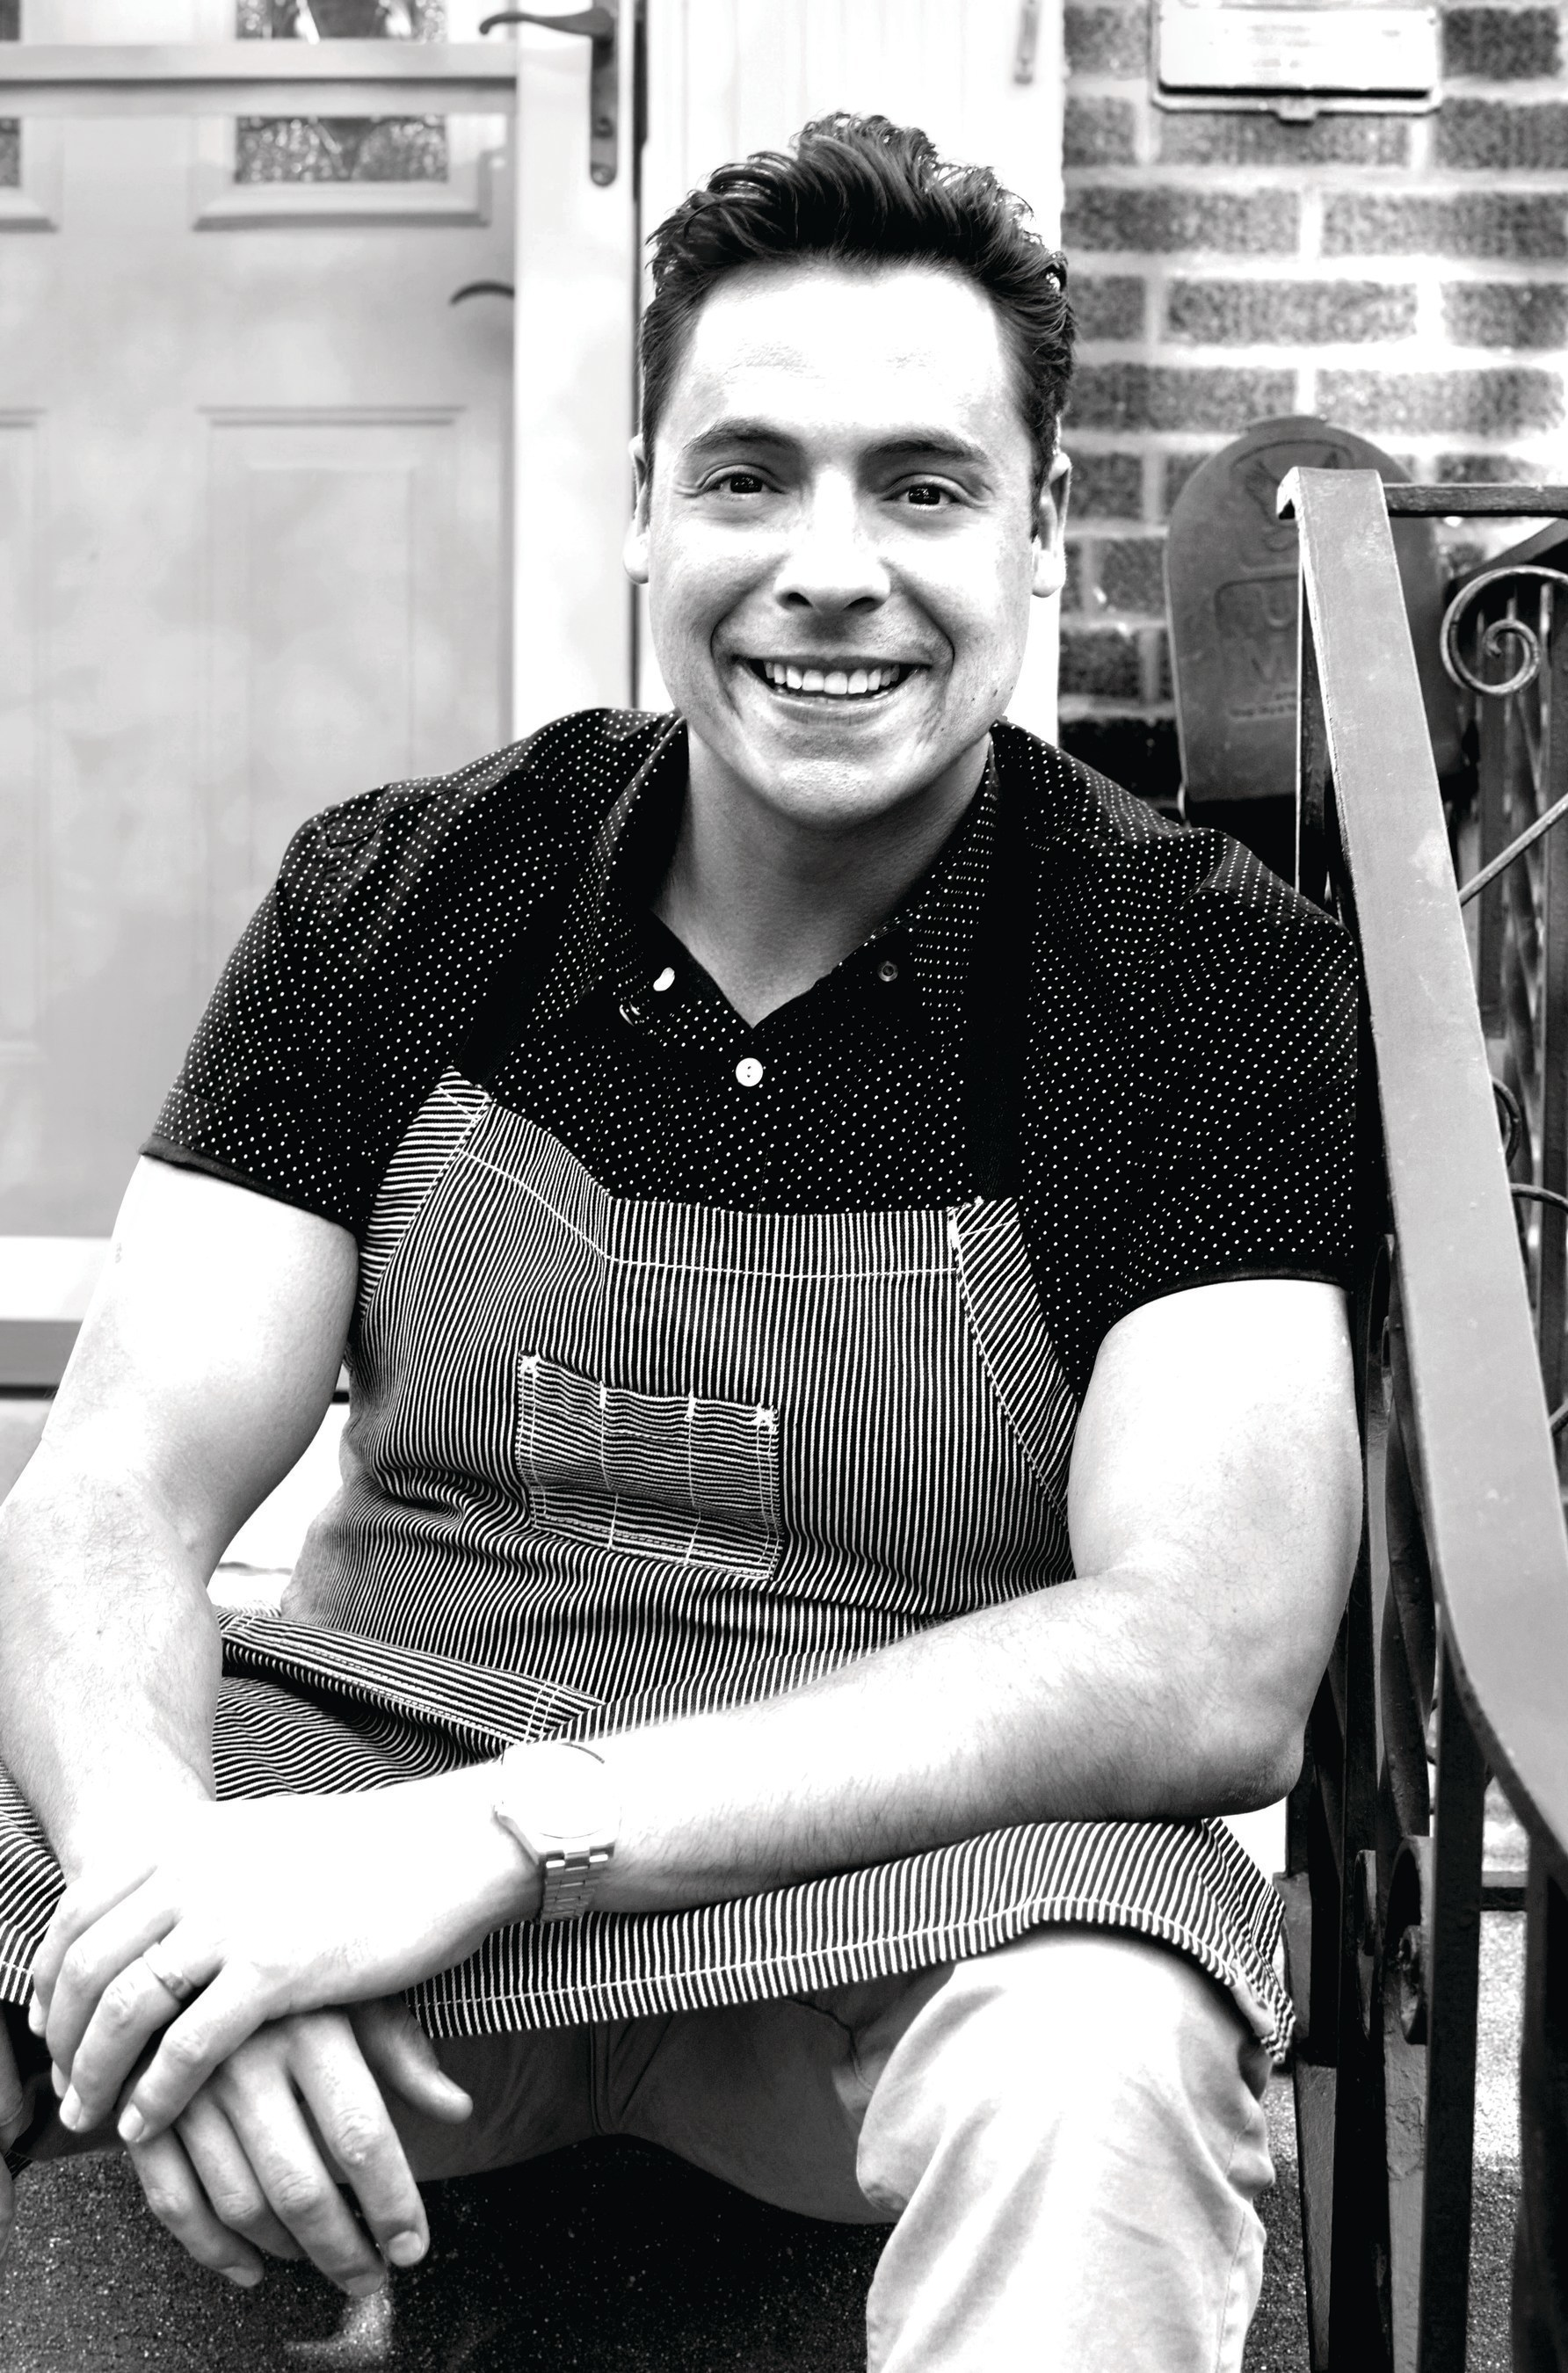 Celebrity chef Jeff Mauro Launches His First Consumer Brand, Pork & Mindy's